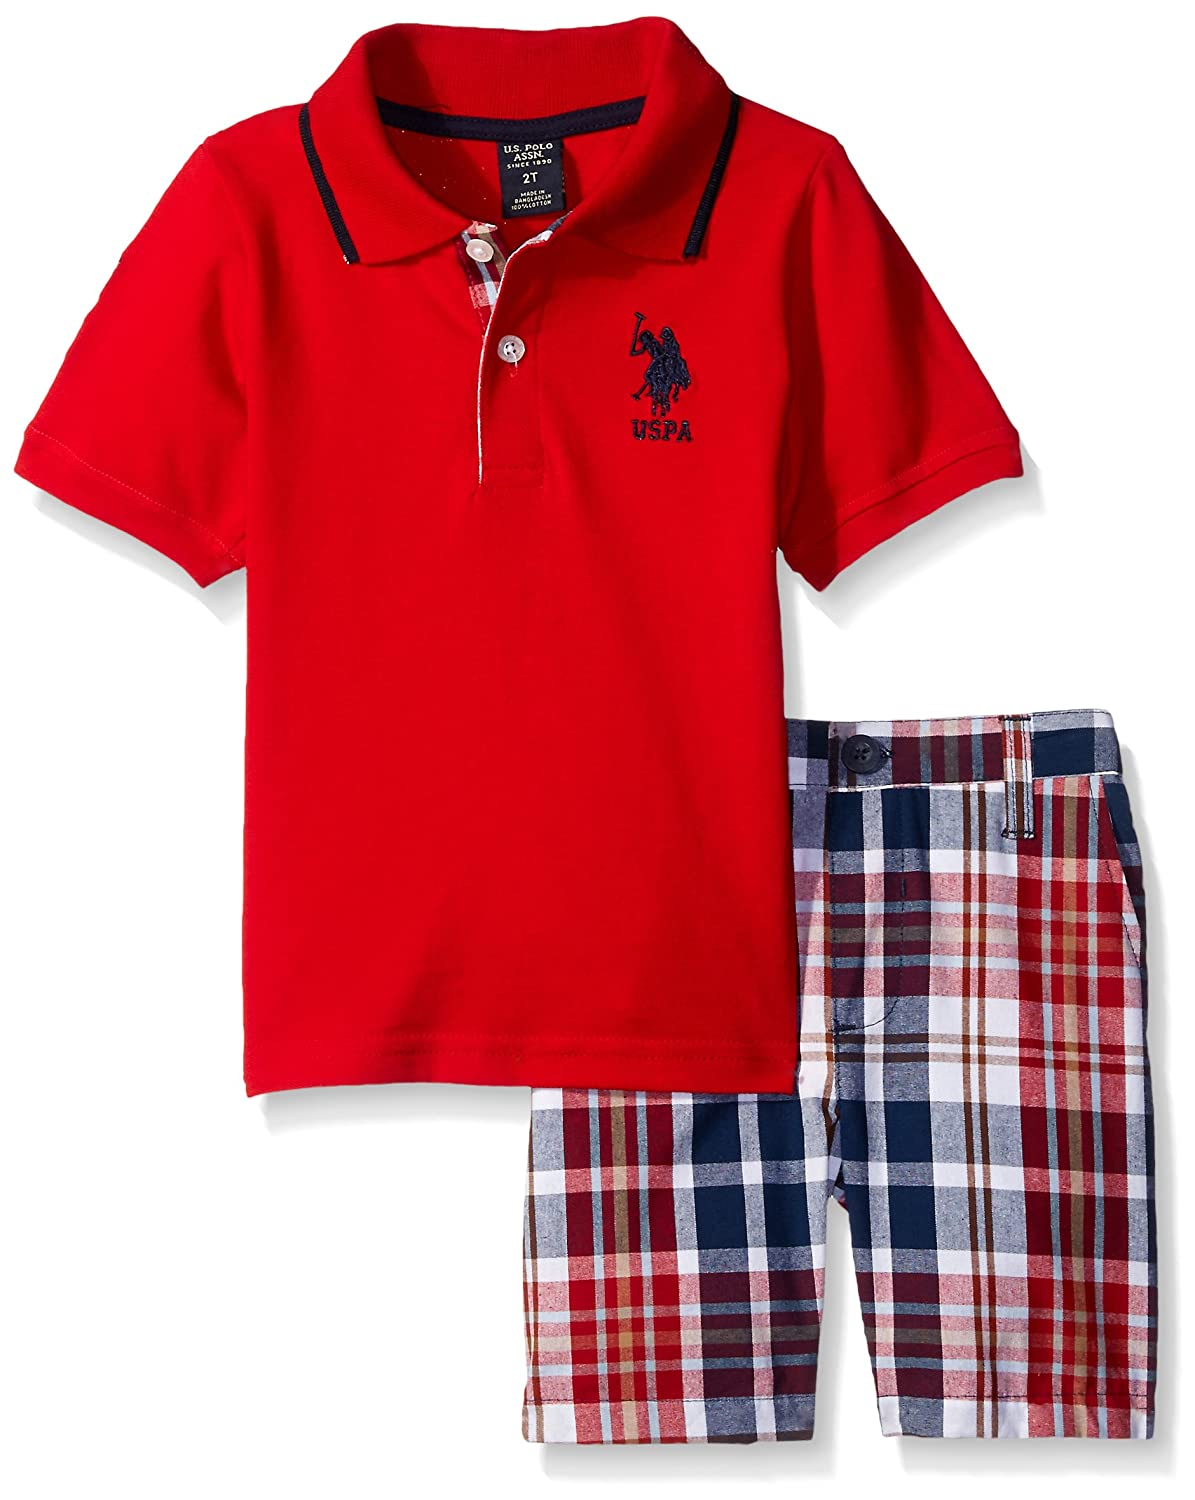 U.S. Polo Assn. boys 2 Piece Big Pony Solid Pique Polo Shirt and Plaid Short QX002